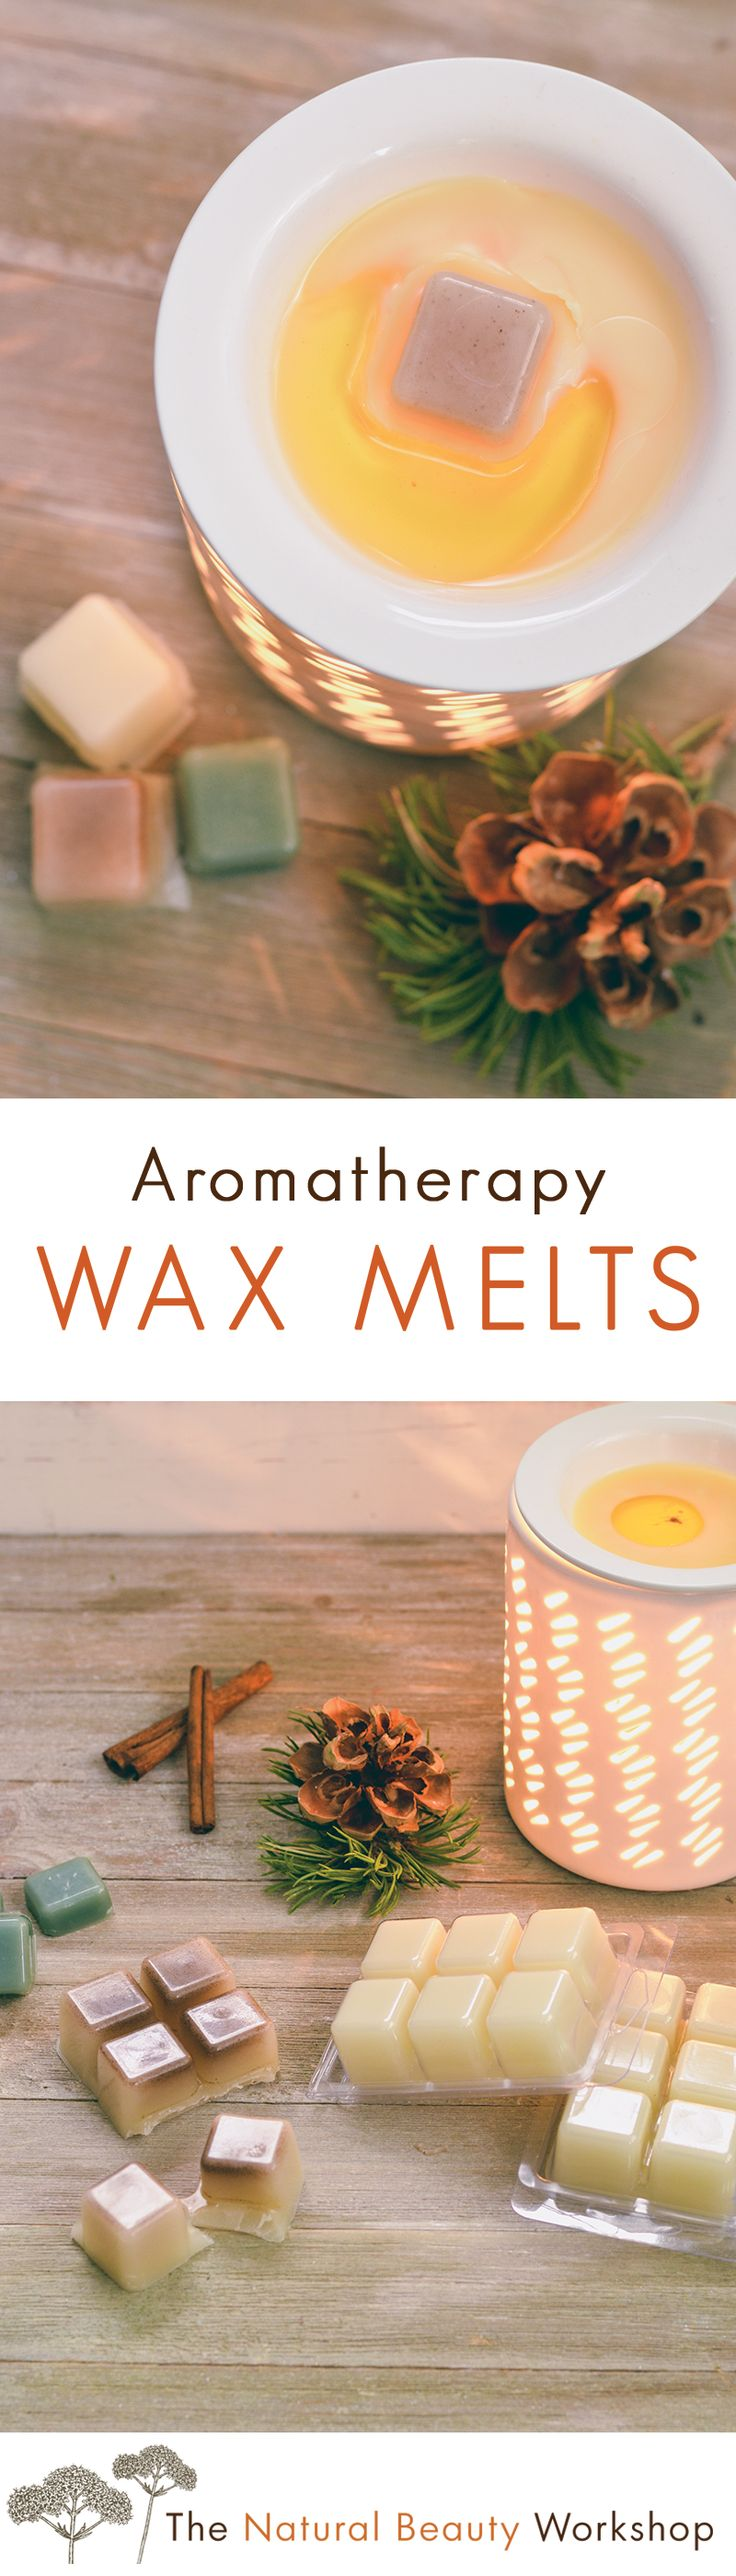 Make Your Own Aromatherapy Wax Melts